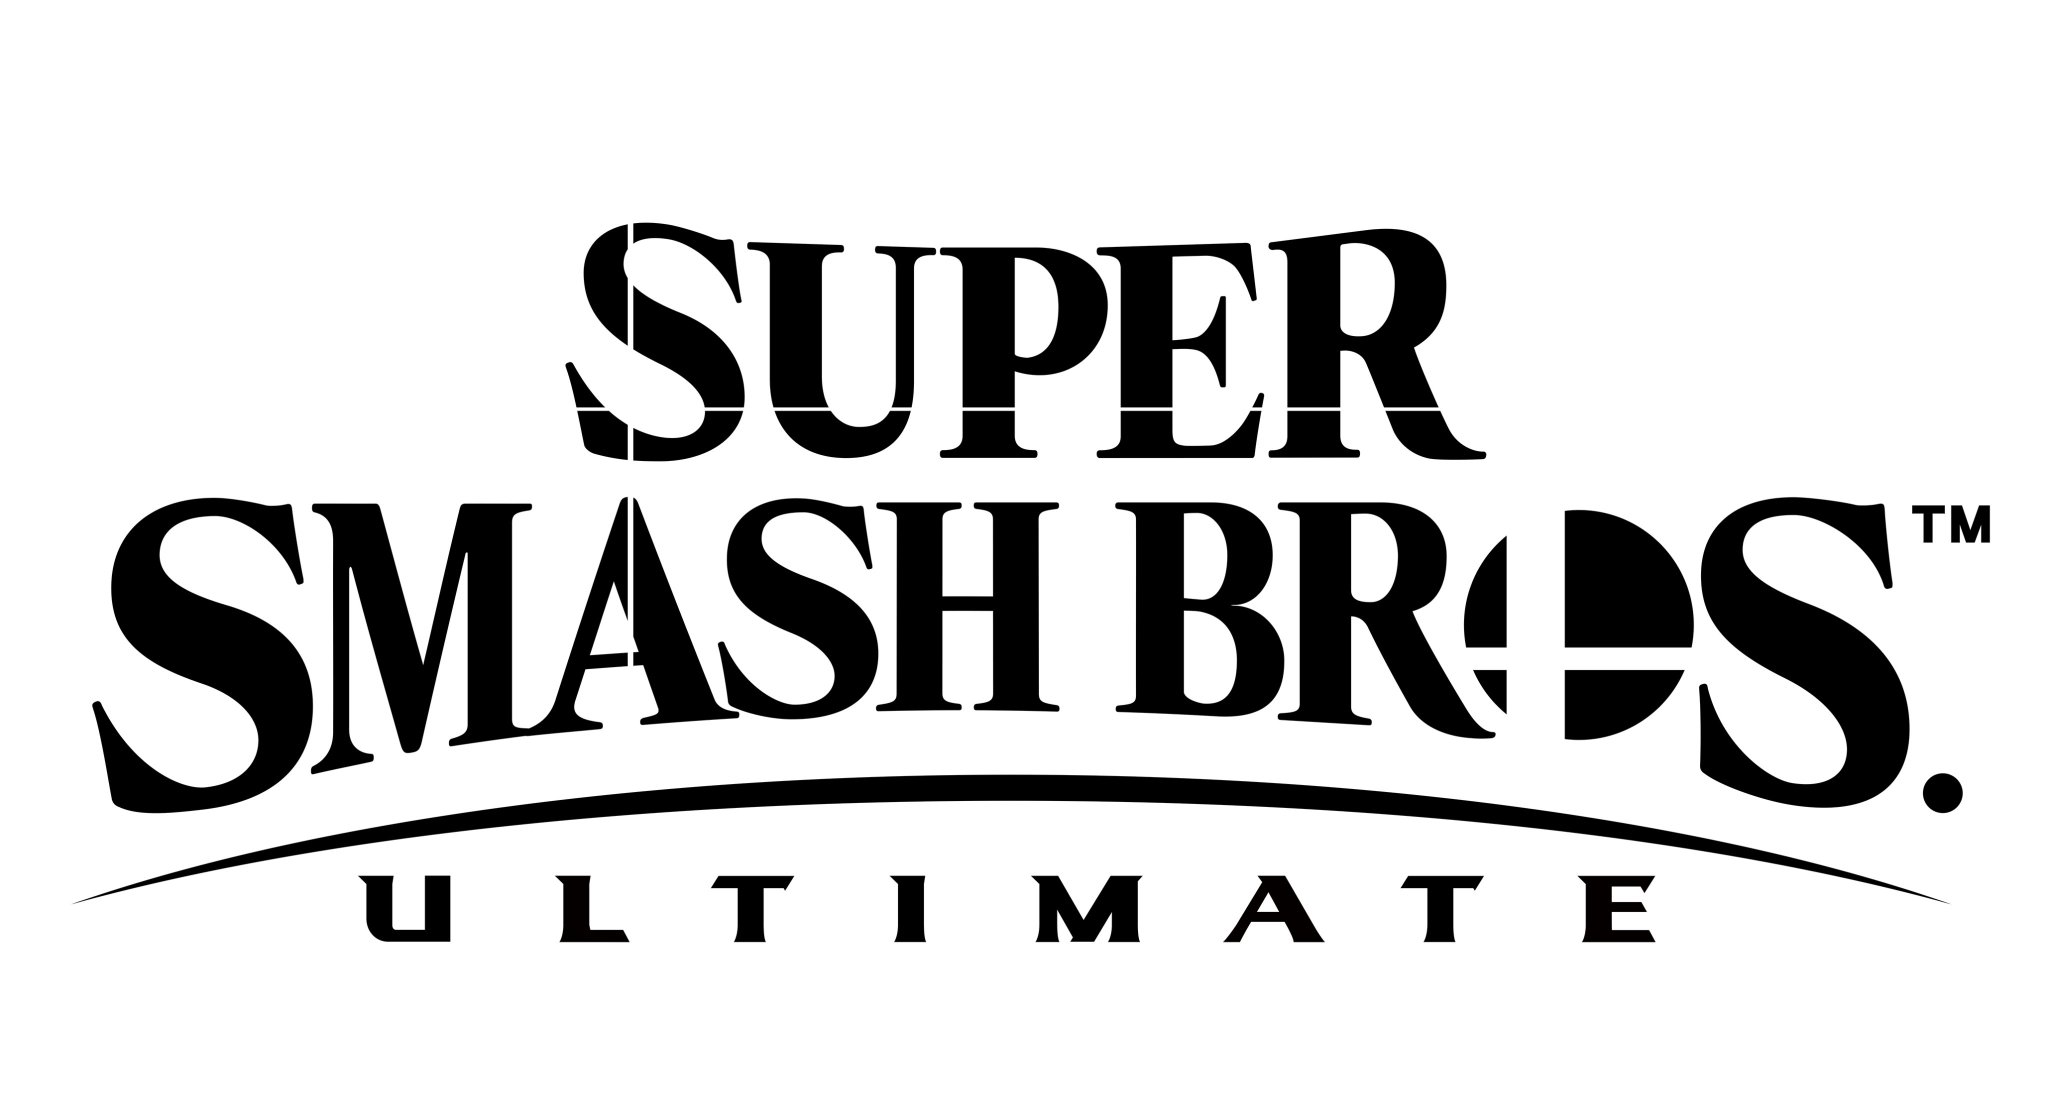 Super #SmashBrosUltimate arrives on #NintendoSwitch 12/7! https://t.co/bchHkeTOwy